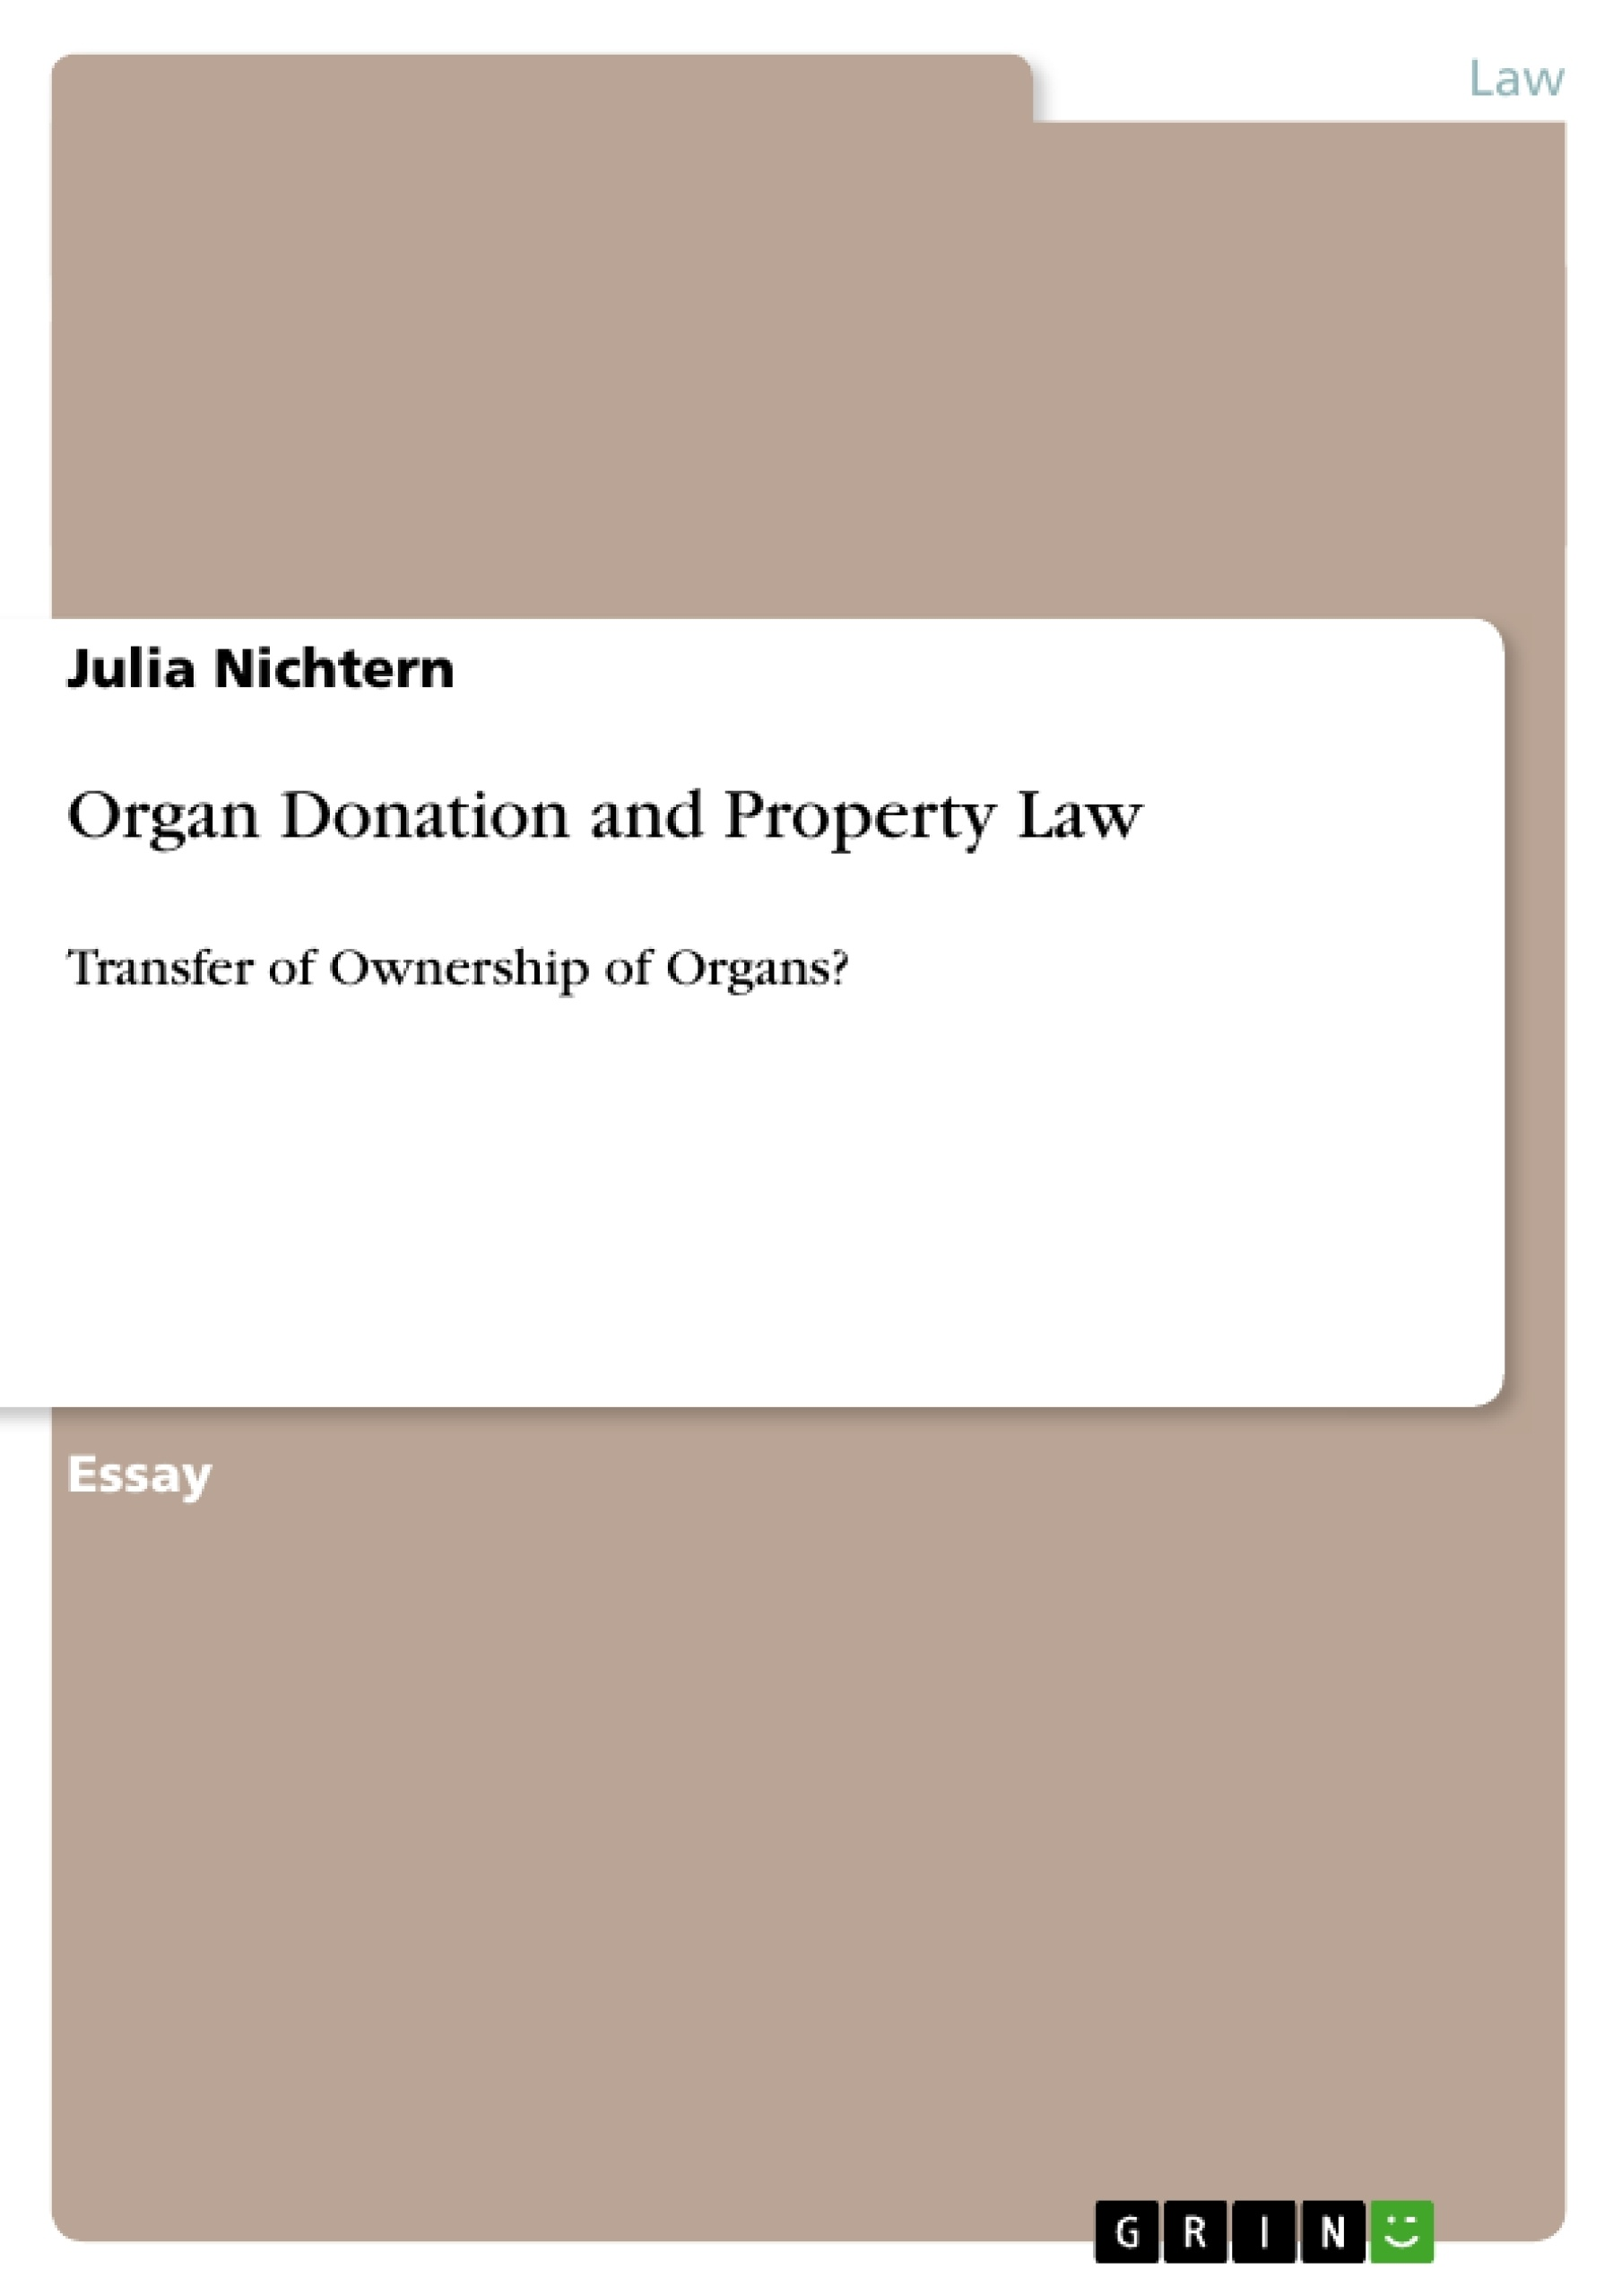 Organ donation thesis statement research paper